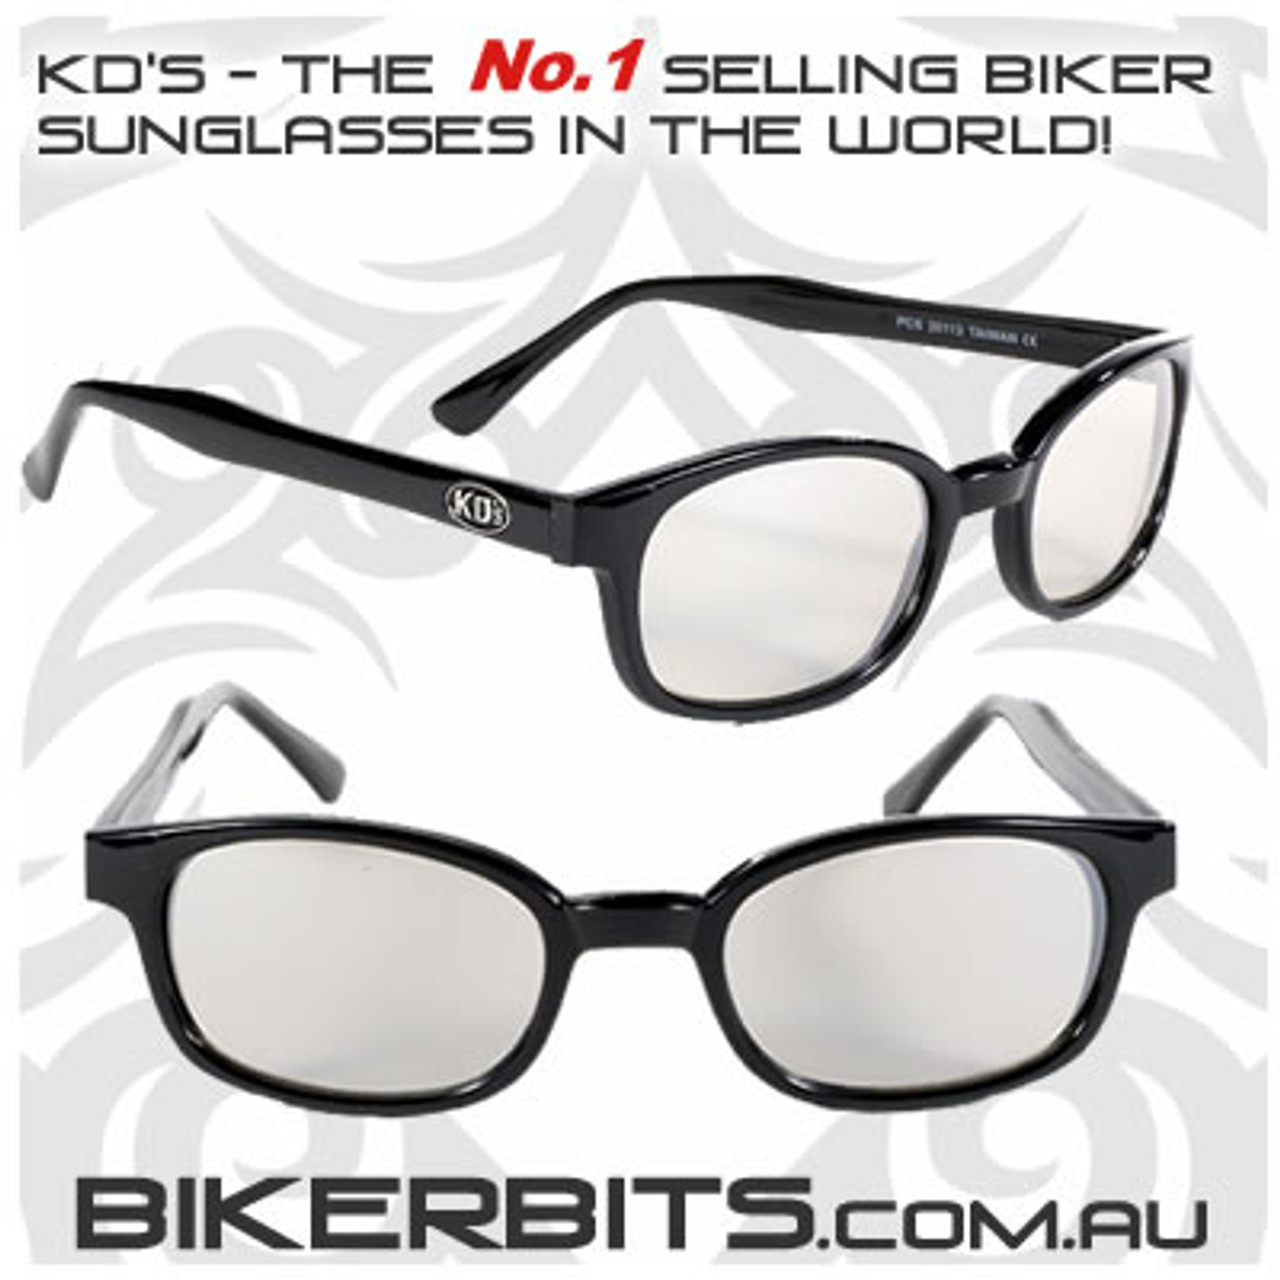 Motorcycle Sunglasses - KD's Clear Silver Mirror